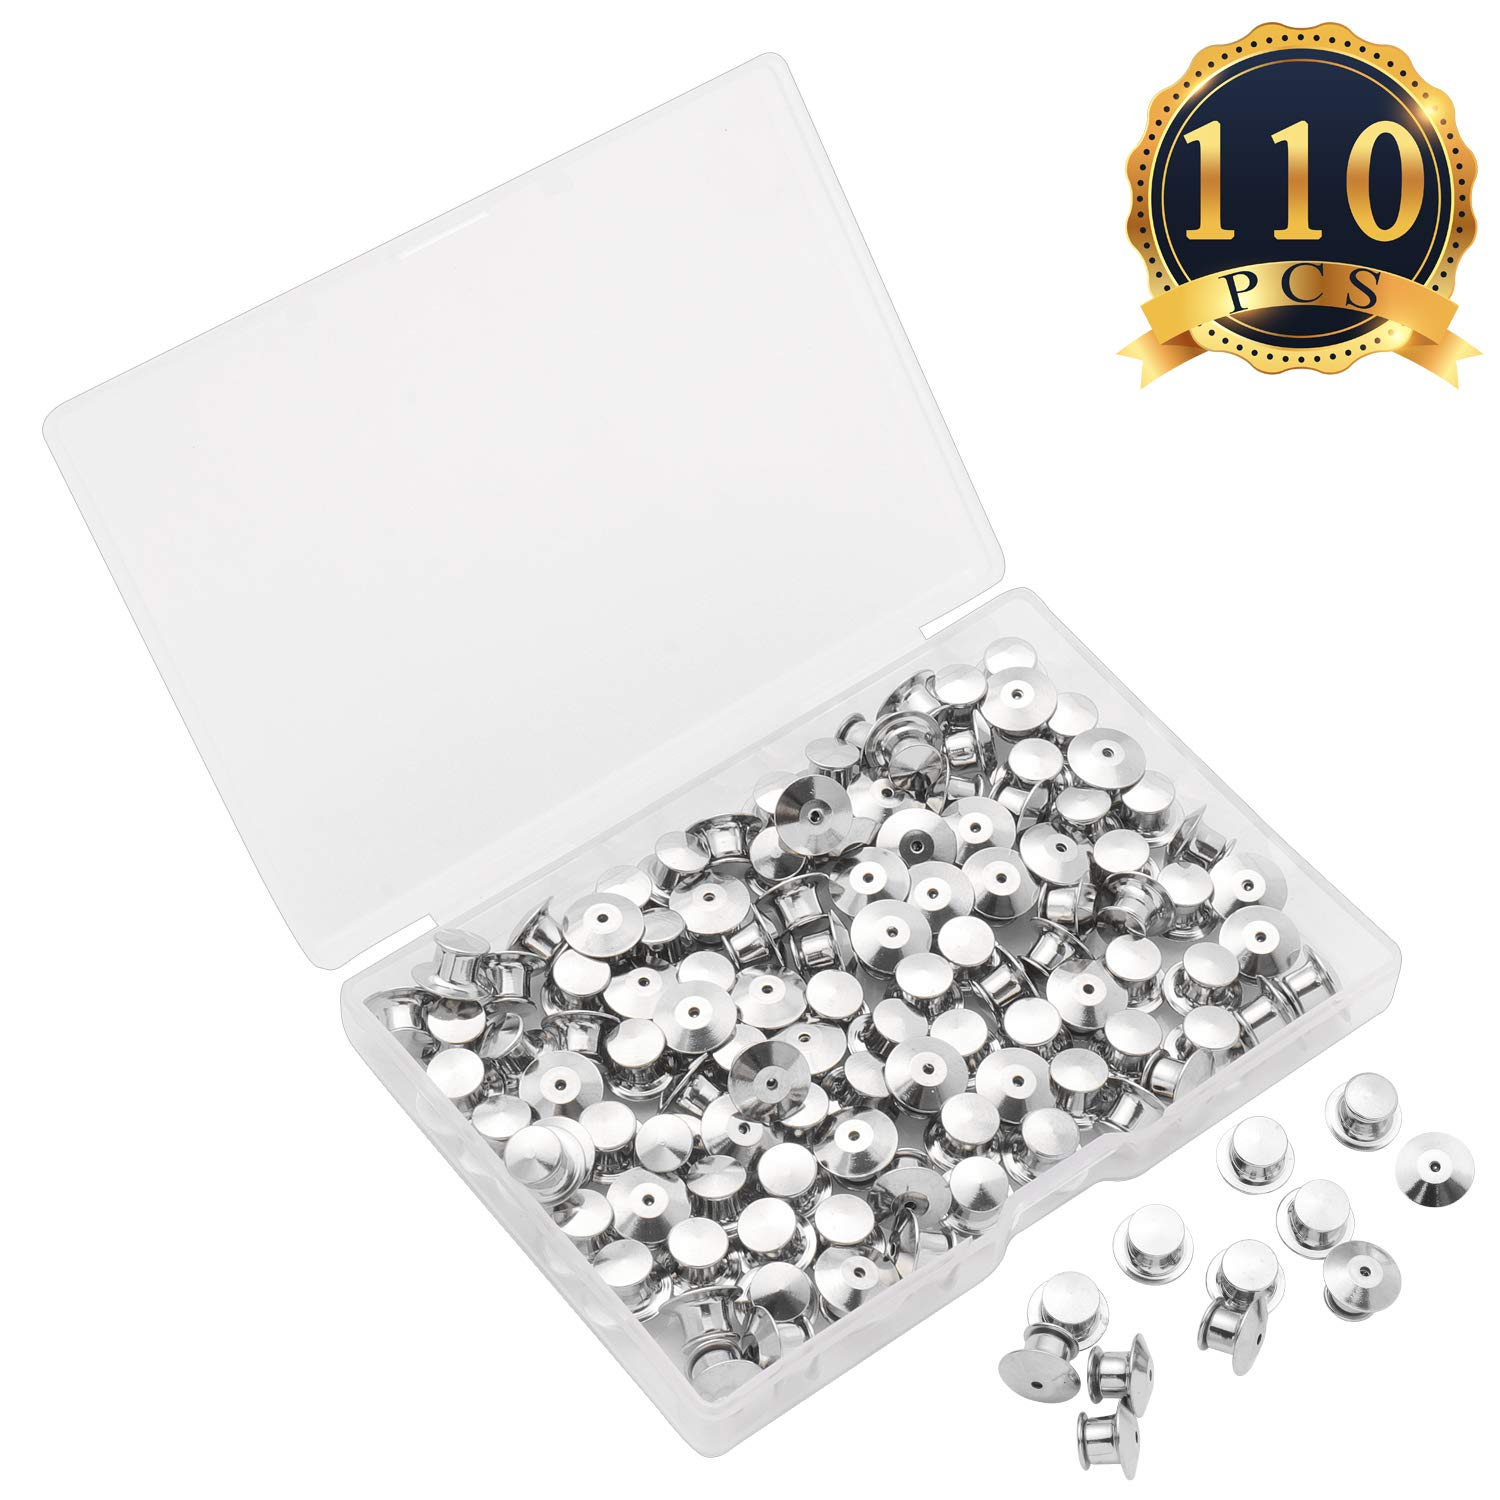 SUBANG 50 Pieces Metal Pin Backs Locking Pin Keepers Locking Clasp with Storage Case